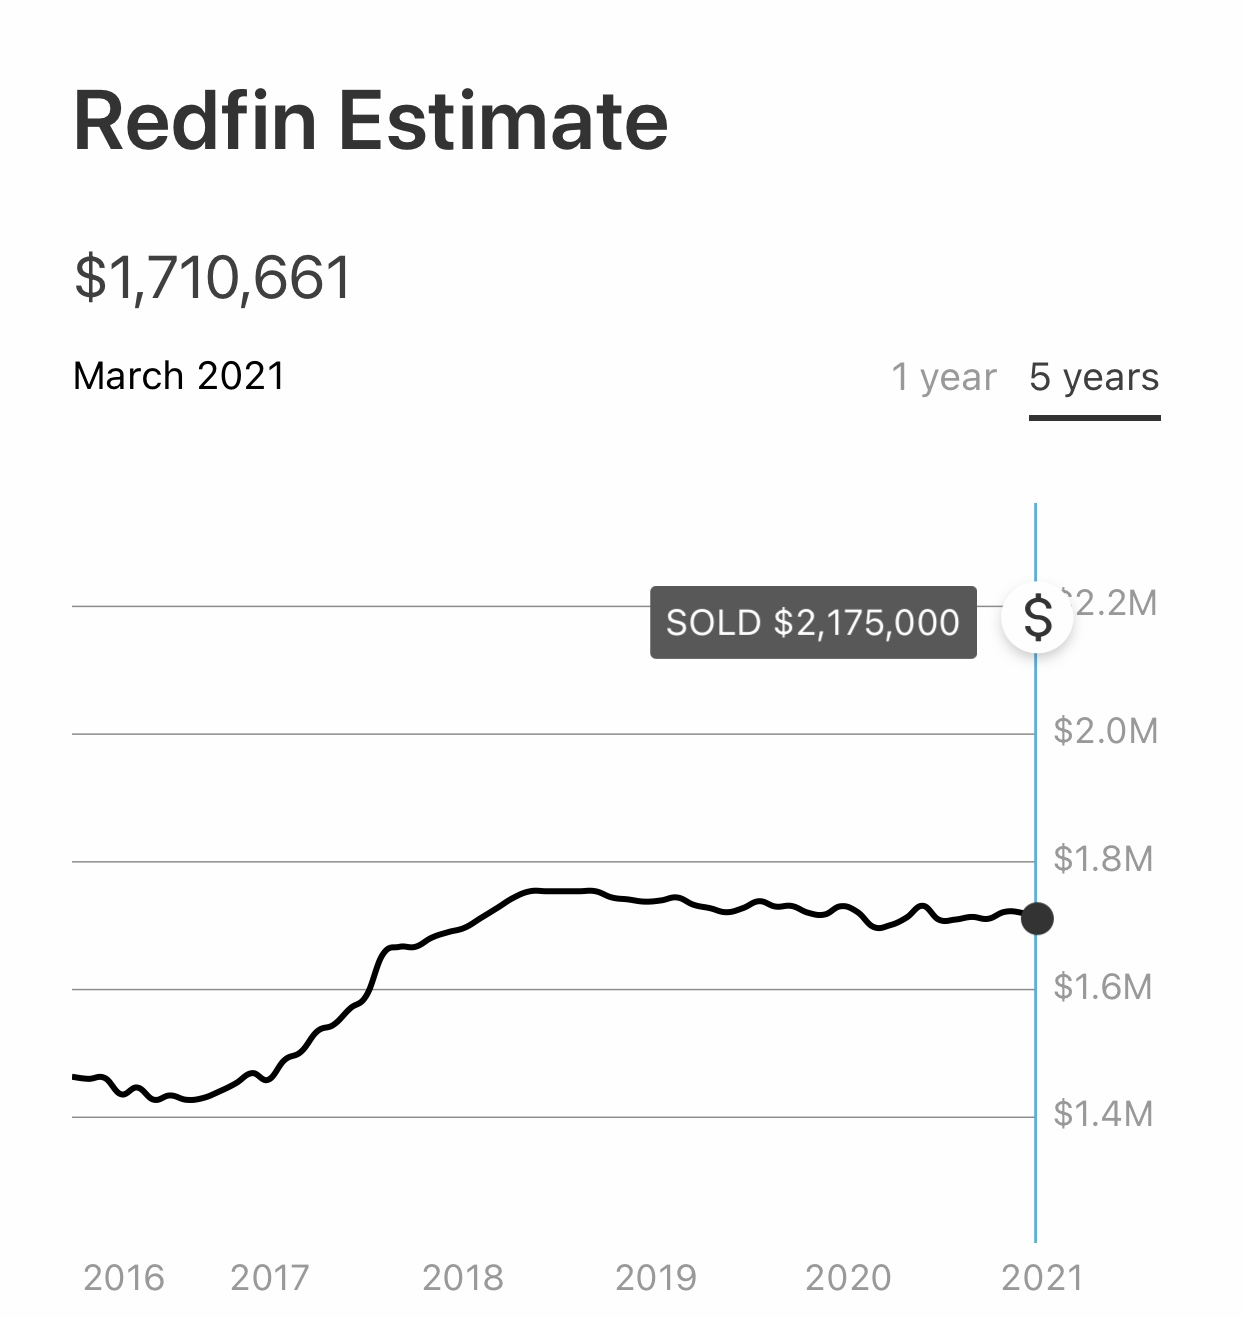 Real estate sales in San Francisco are strong in March 2021